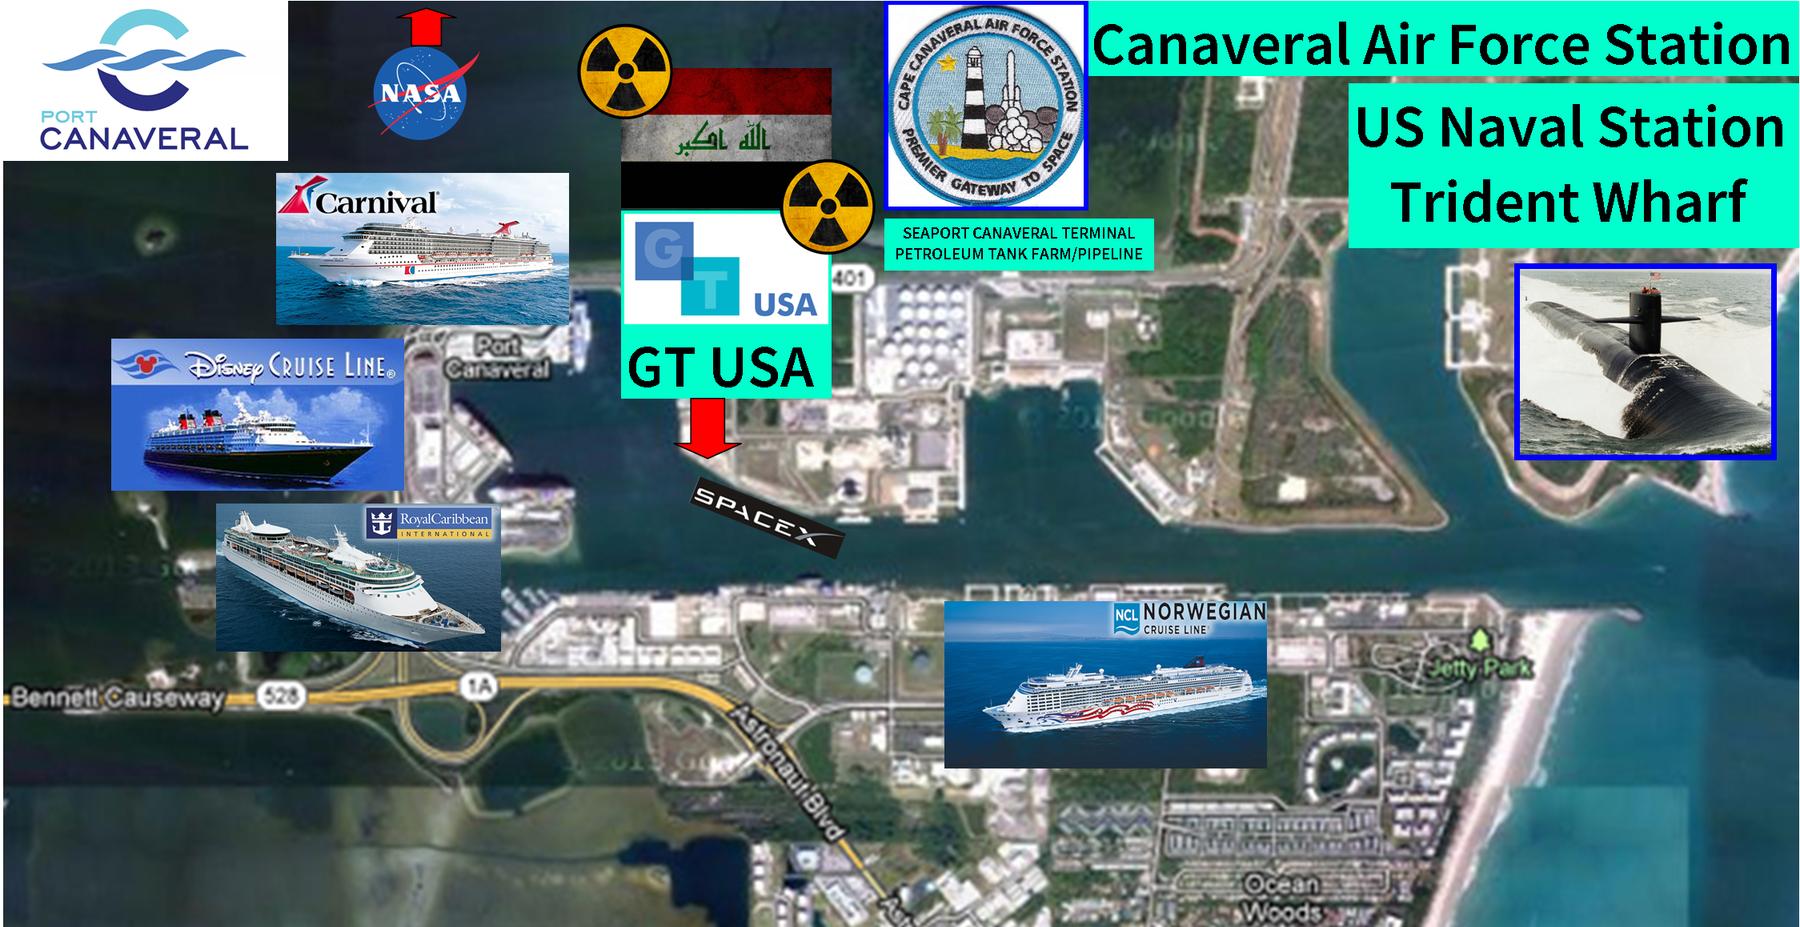 Map of Port Canaveral indicating locations of GT USA container terminal, national security assets, critical infrastructure, SpaceX Falcon 9 barge and cruise ship terminals